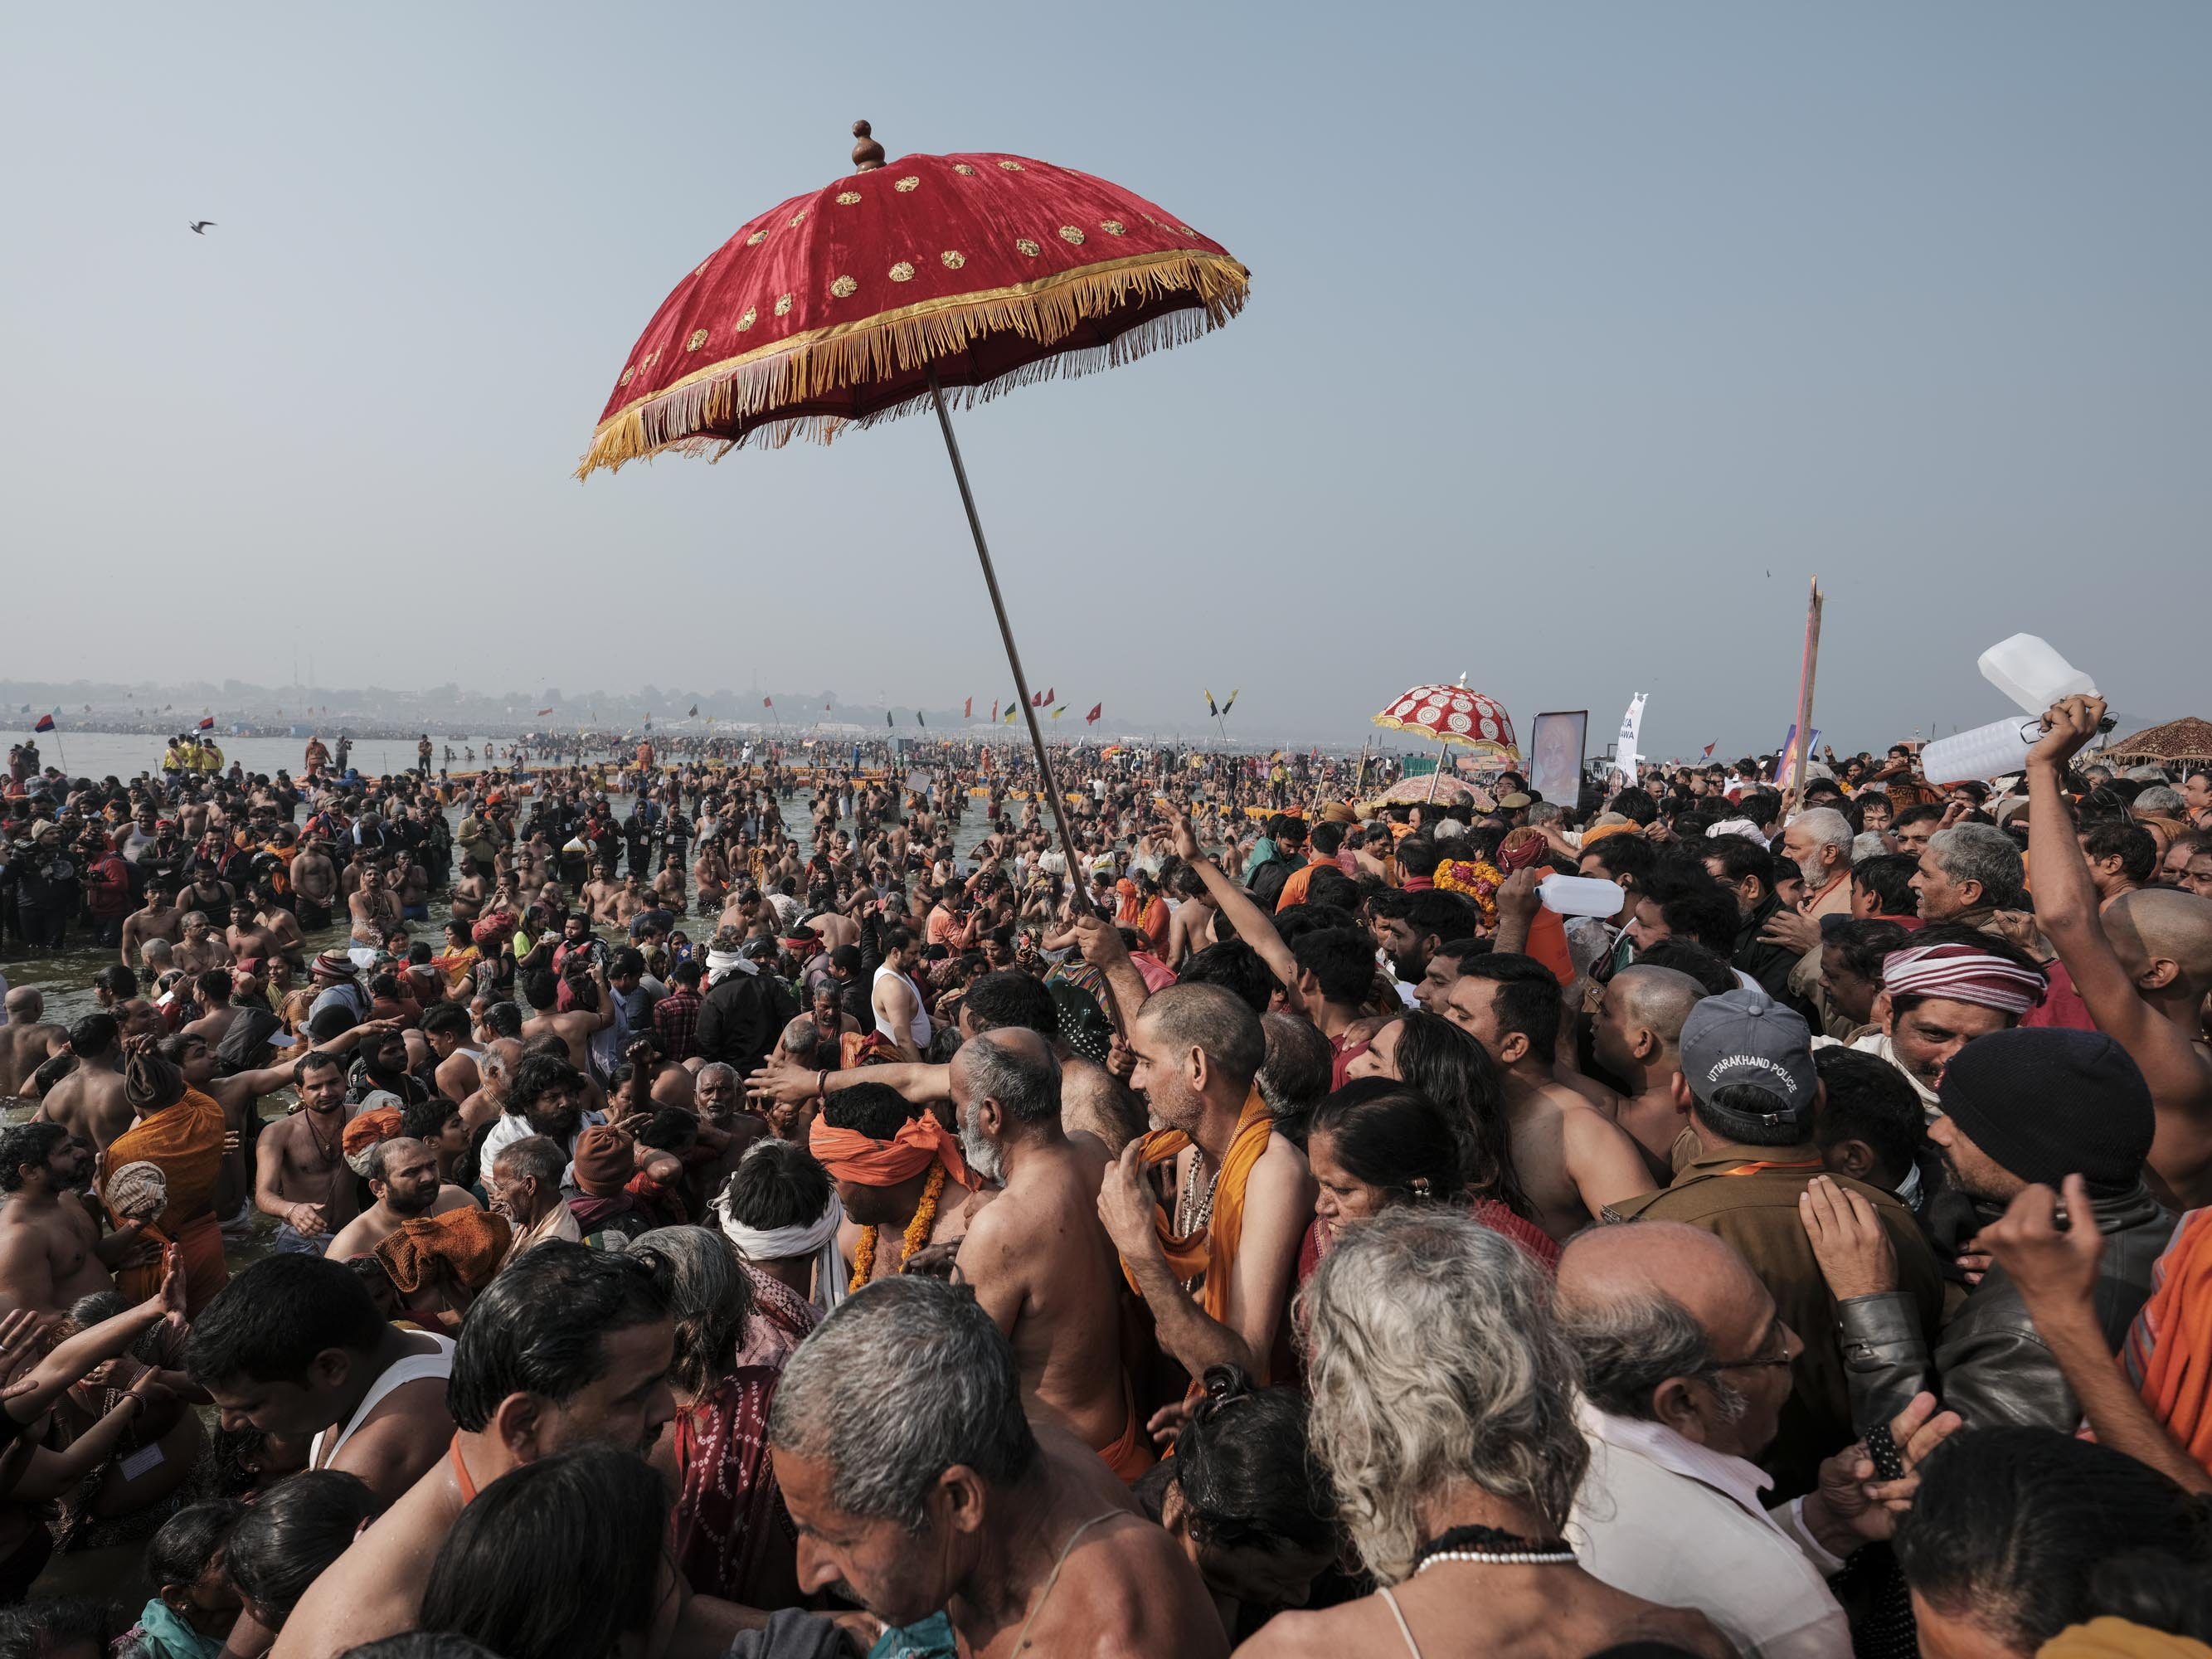 going in the water crowd 4 February pilgrims Kumbh mela 2019 India Allahabad Prayagraj Ardh hindu religious Festival event rivers photographer jose jeuland photography